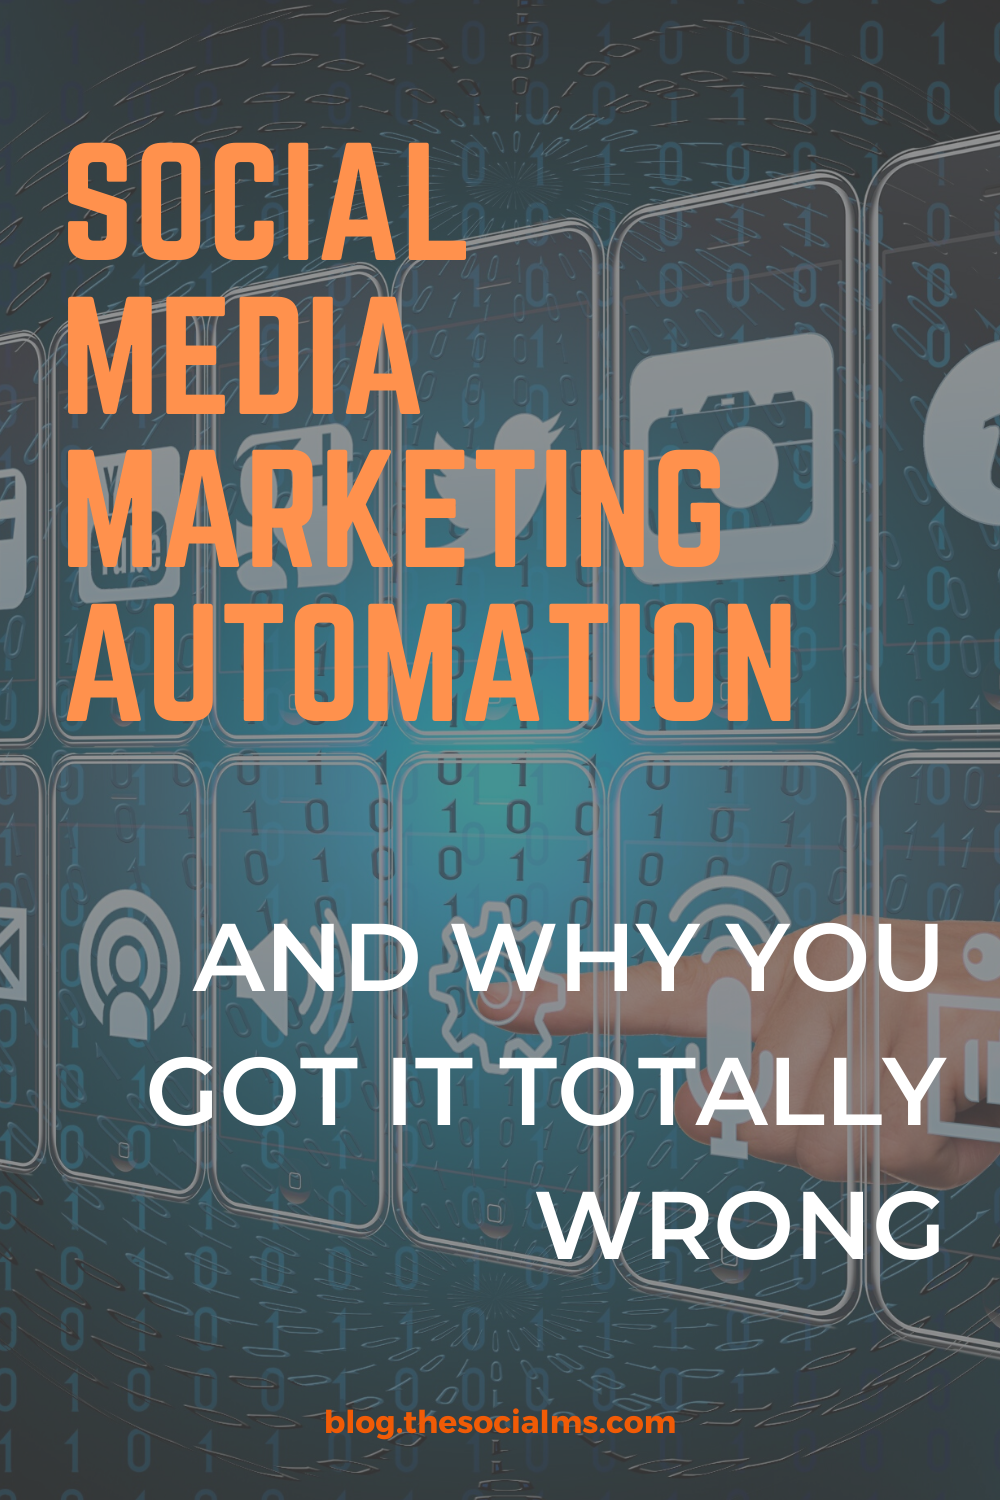 Social media marketing automation could be a good thing. Here is what you need to know to use automation to grow your business #socialmedia #marketingautomation #socialmediatips #socialmediamarketing #marketingstrategy